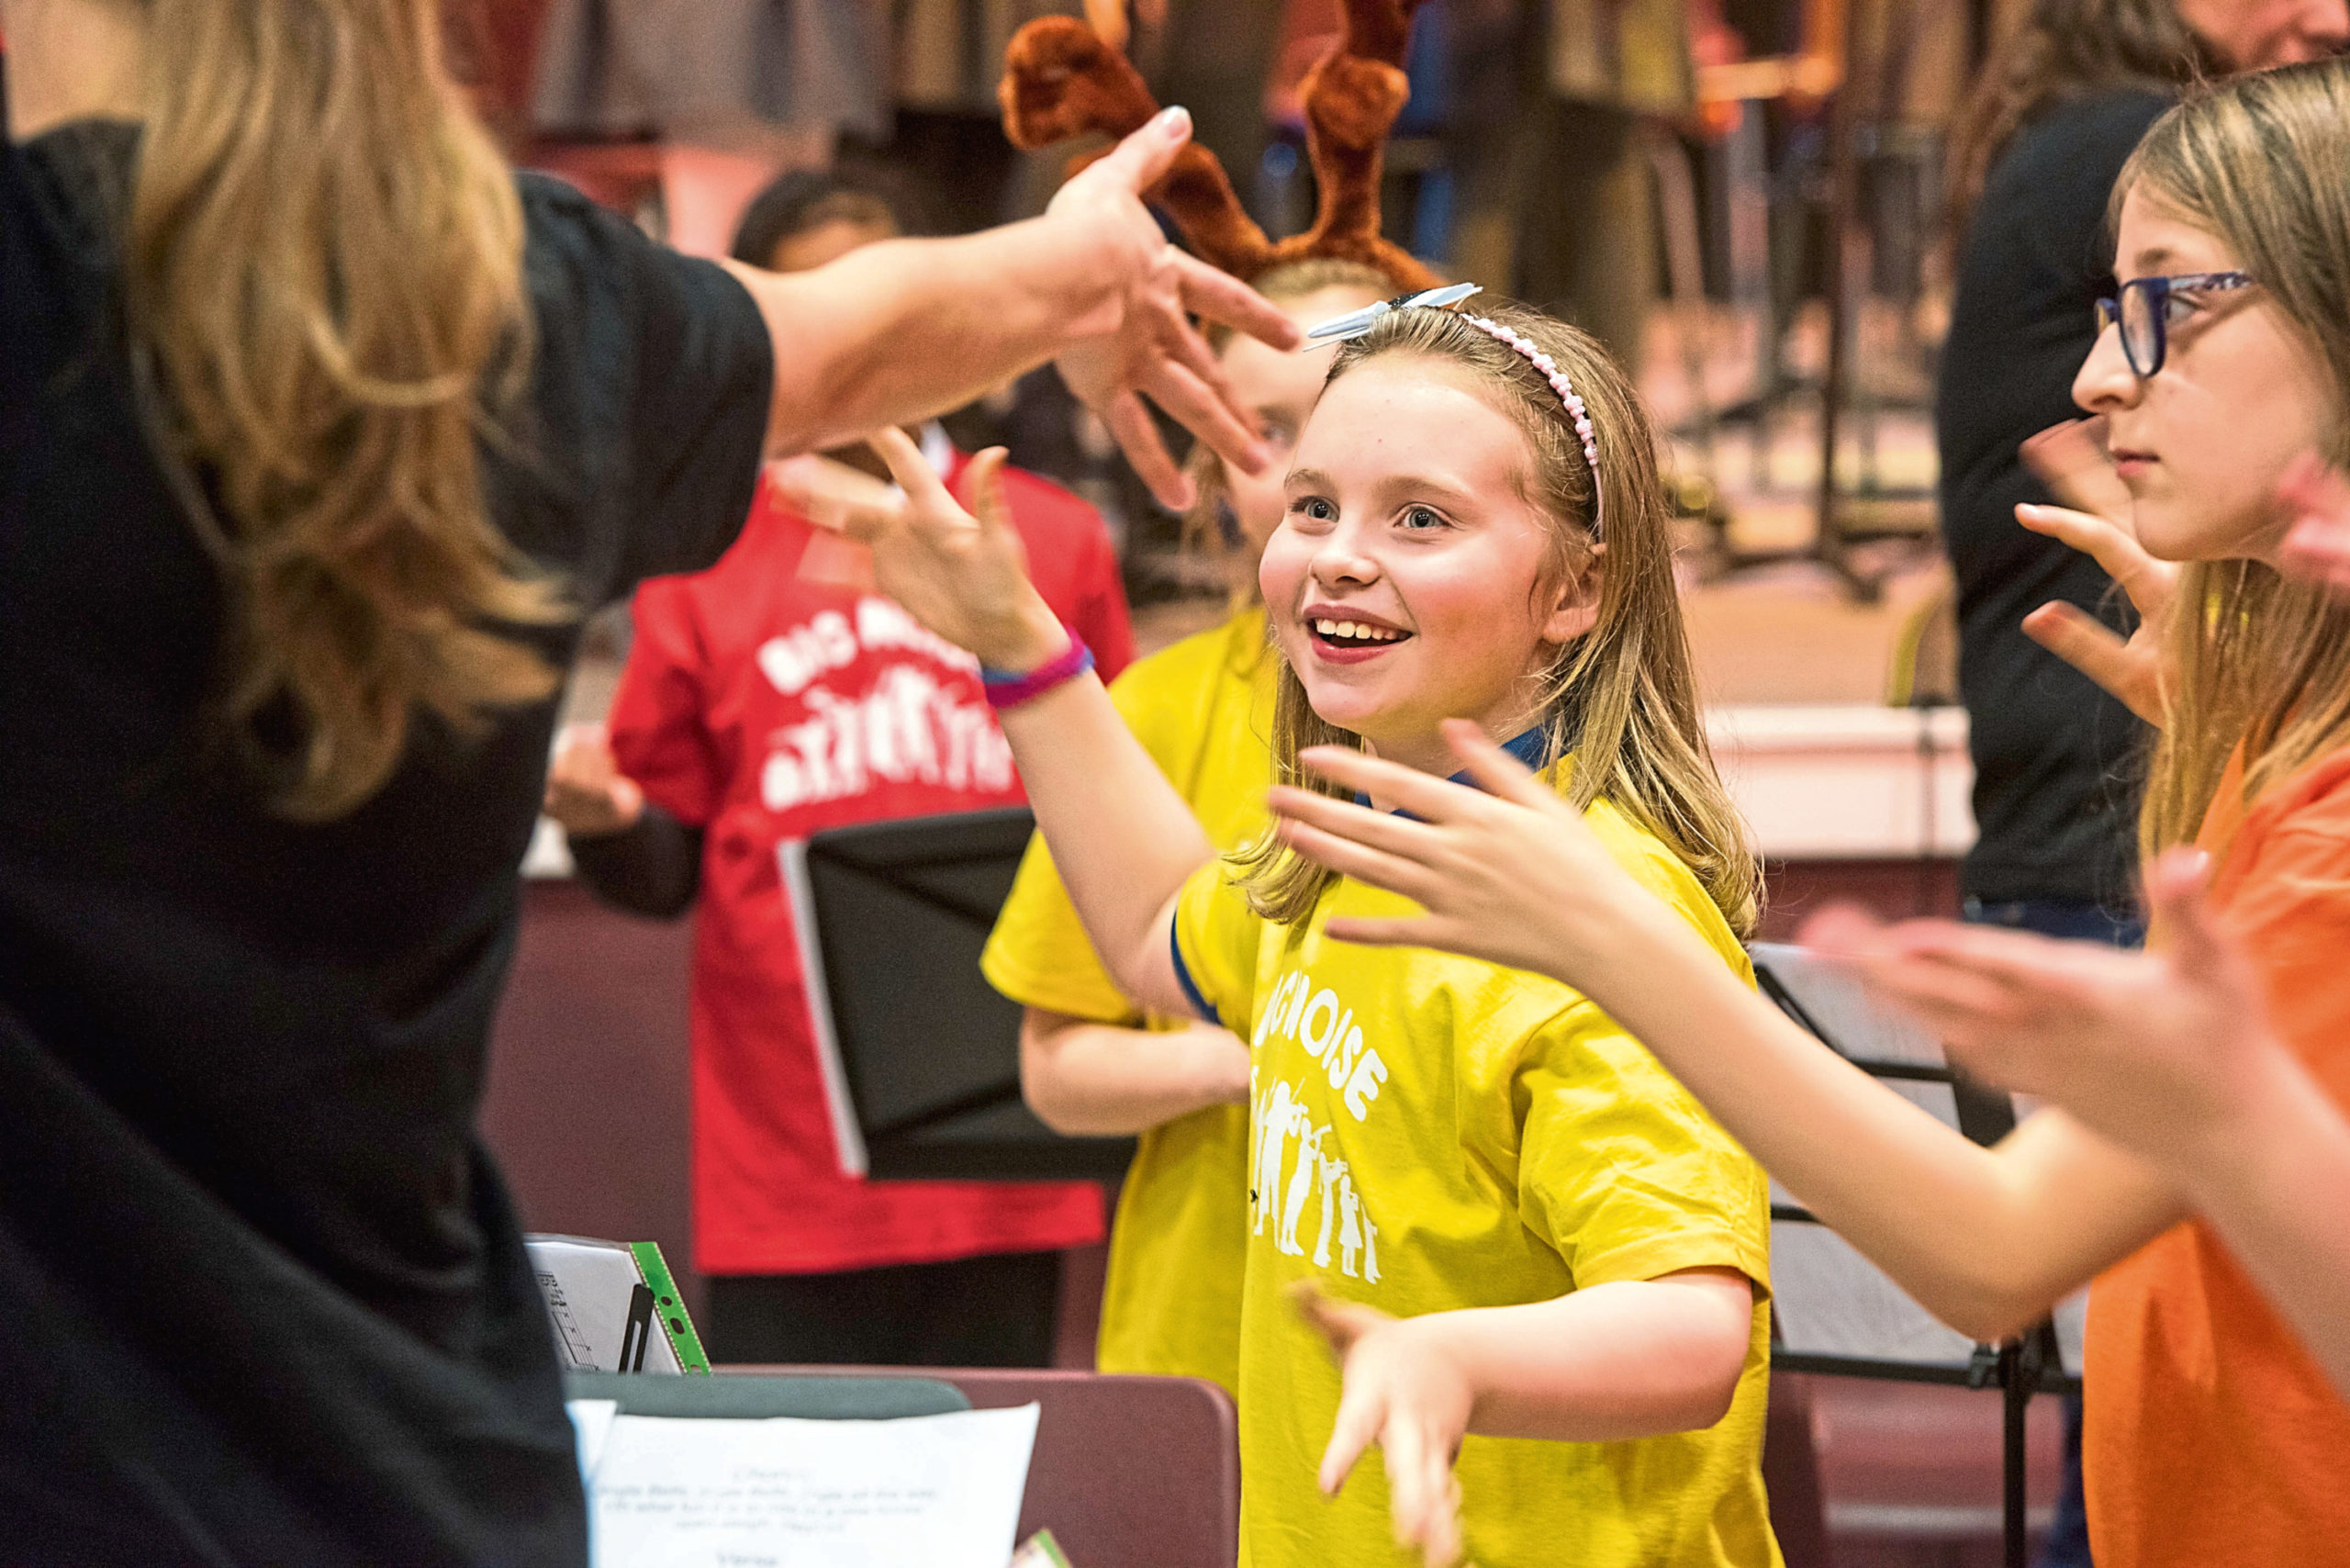 The community-based orchestral programme is hosting a week of birthday-related activities, including exclusive online performances by the Scottish Chamber Orchestra.